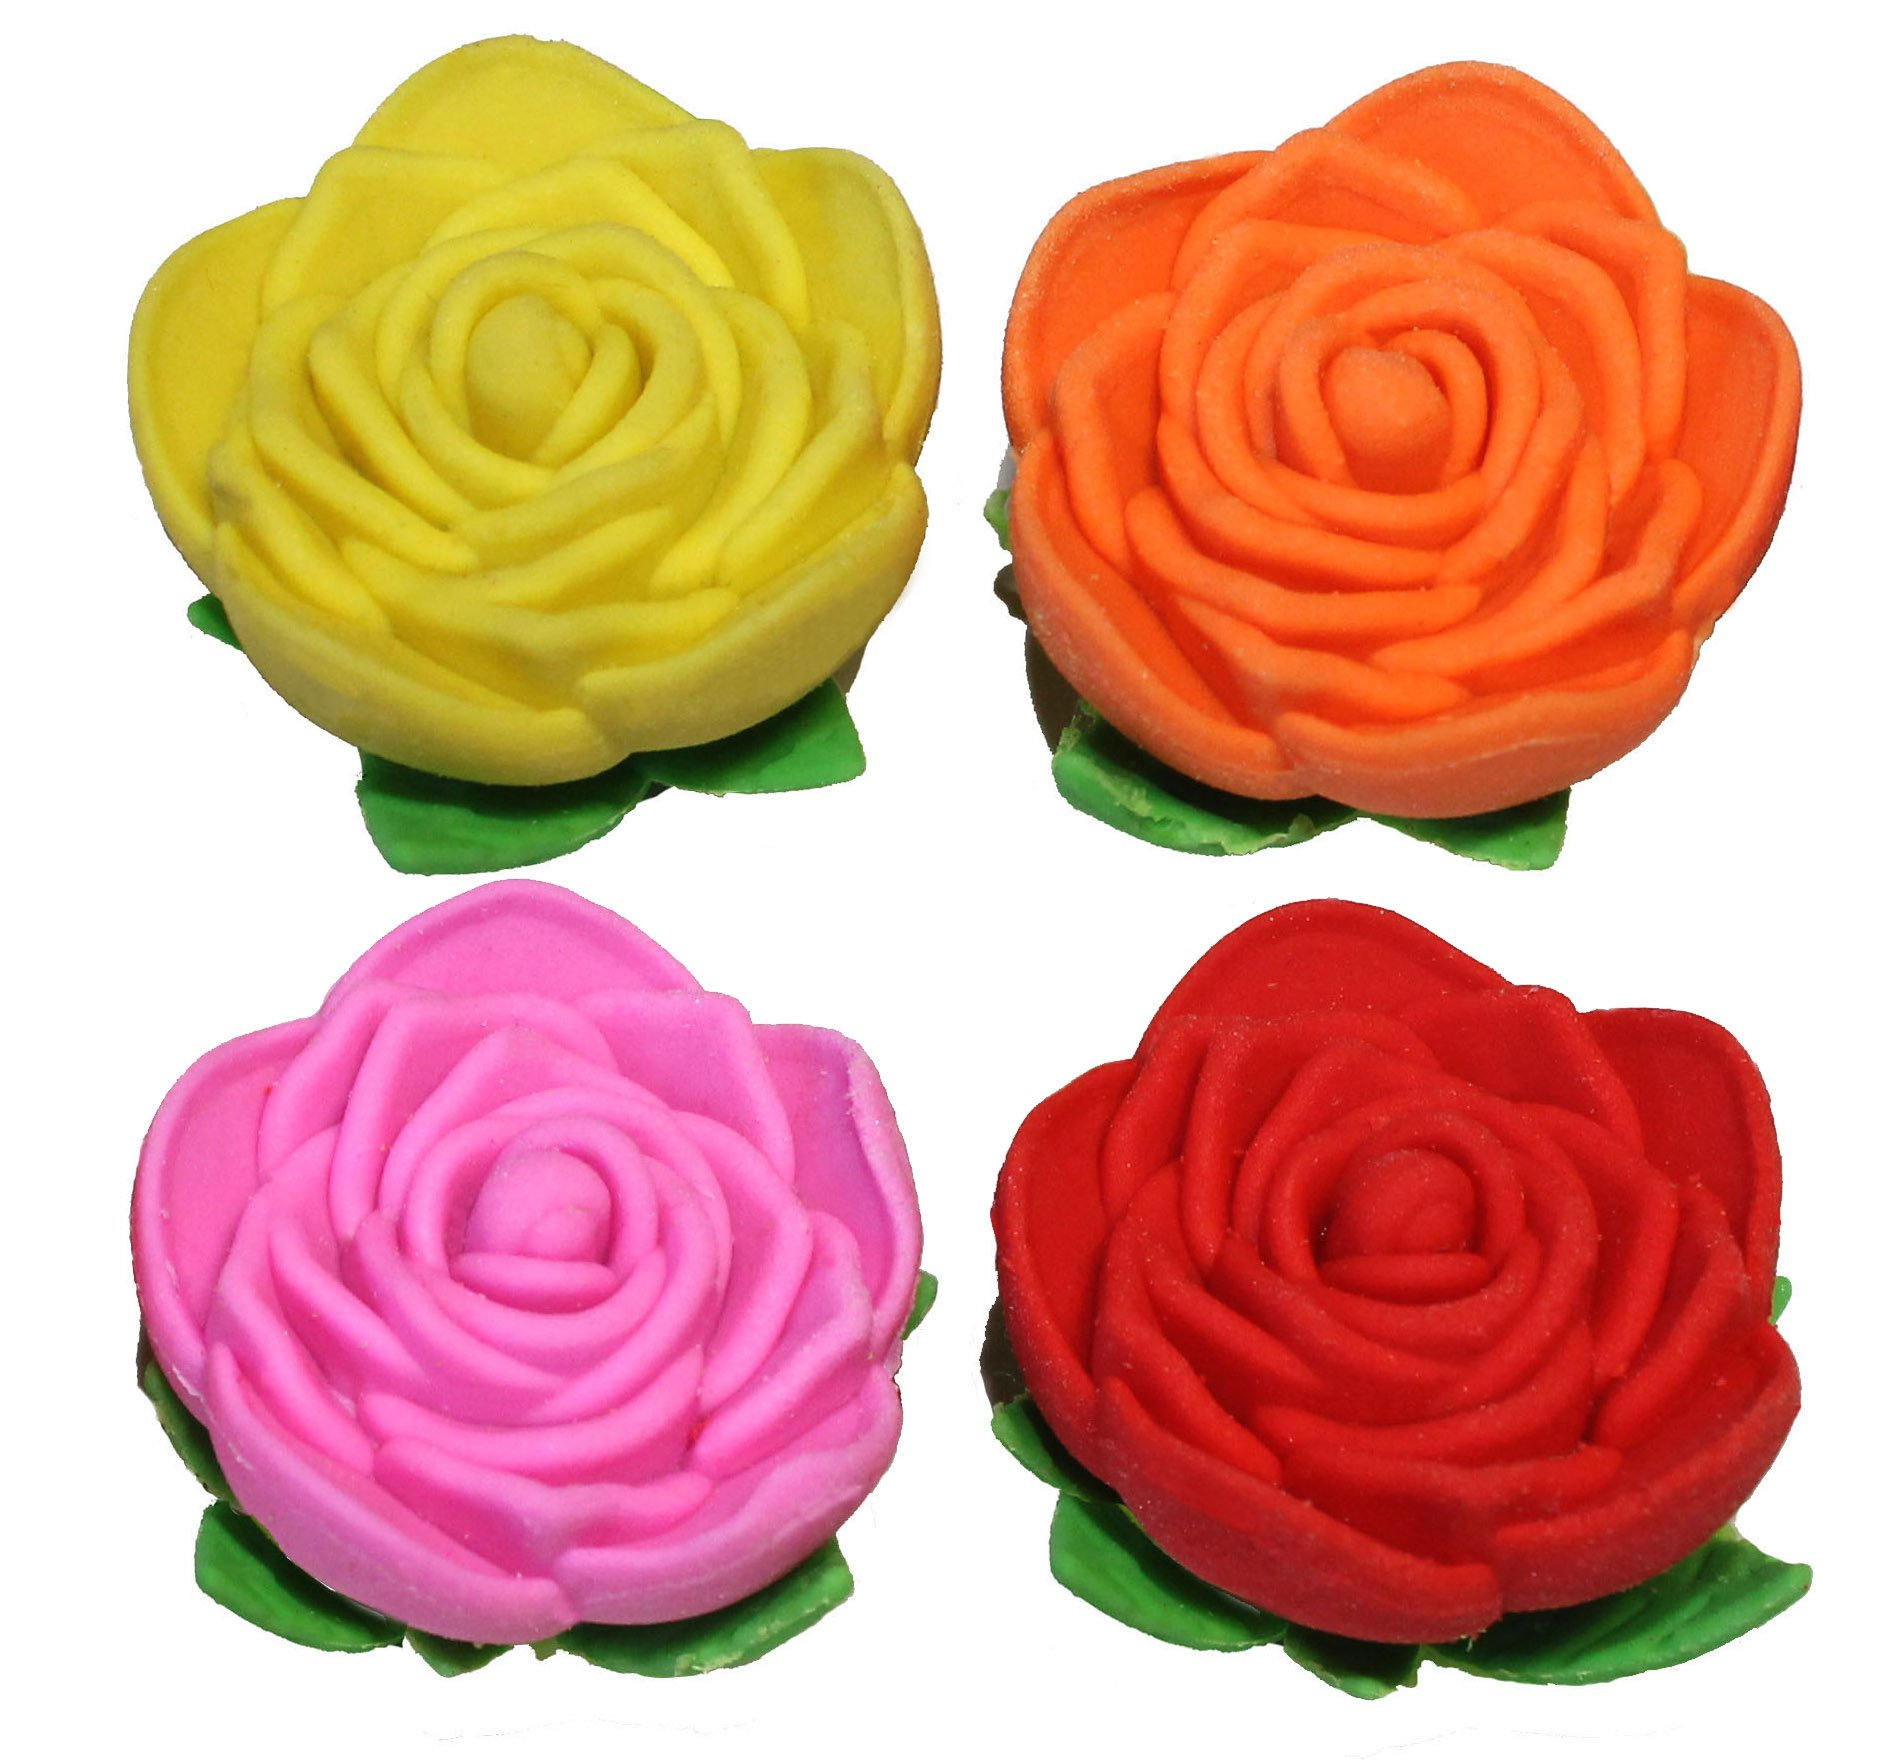 Lucore Rose Pencil Top Erasers - 16 pcs Colorful Flower Shaped Kids Pen Cap Toppers by Lucore Home (Image #1)